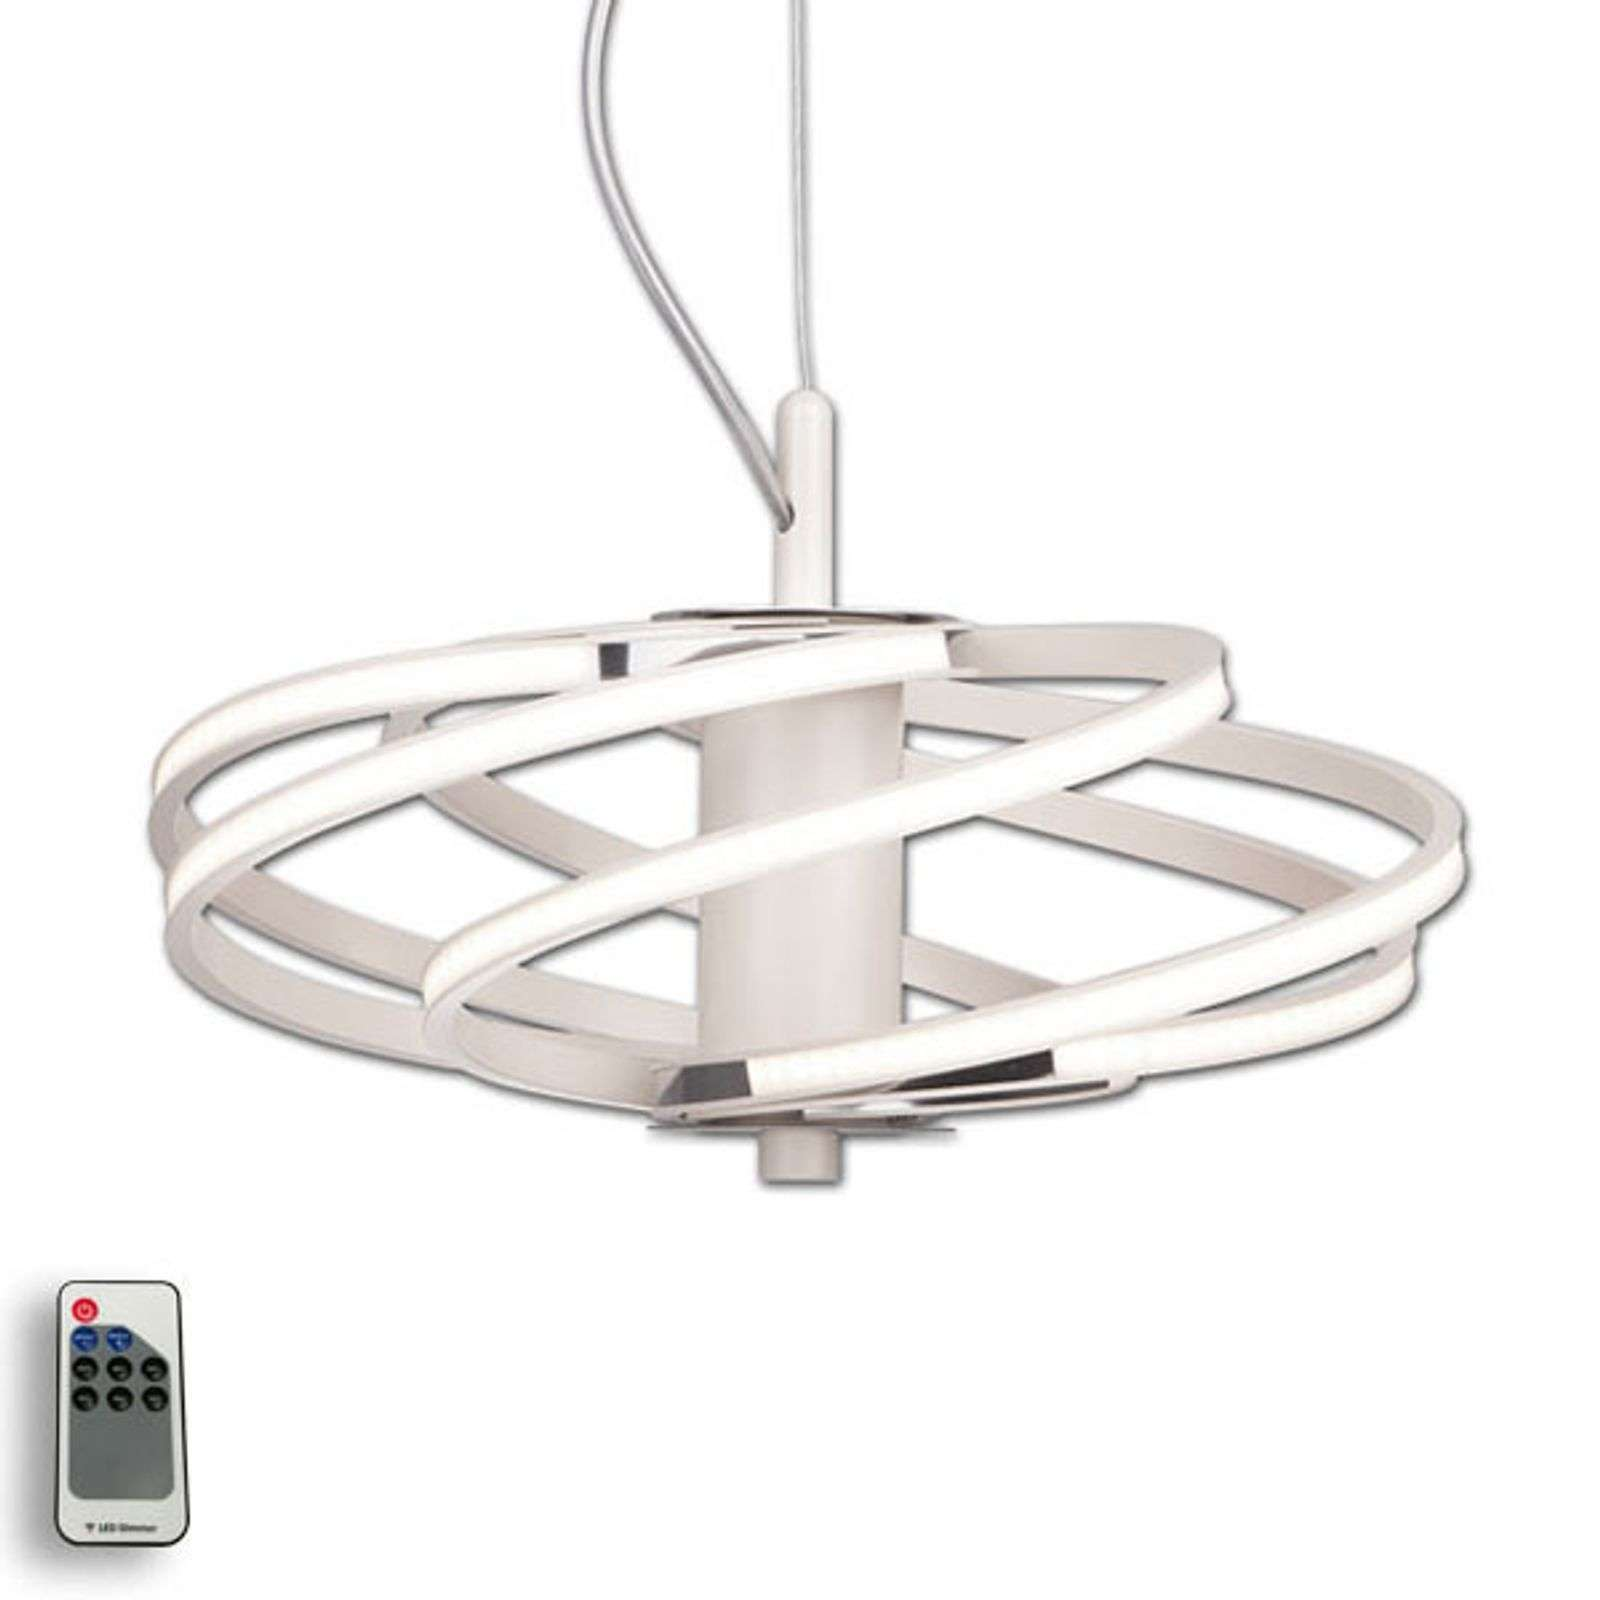 Tilia - suspension LED élégante en blanc